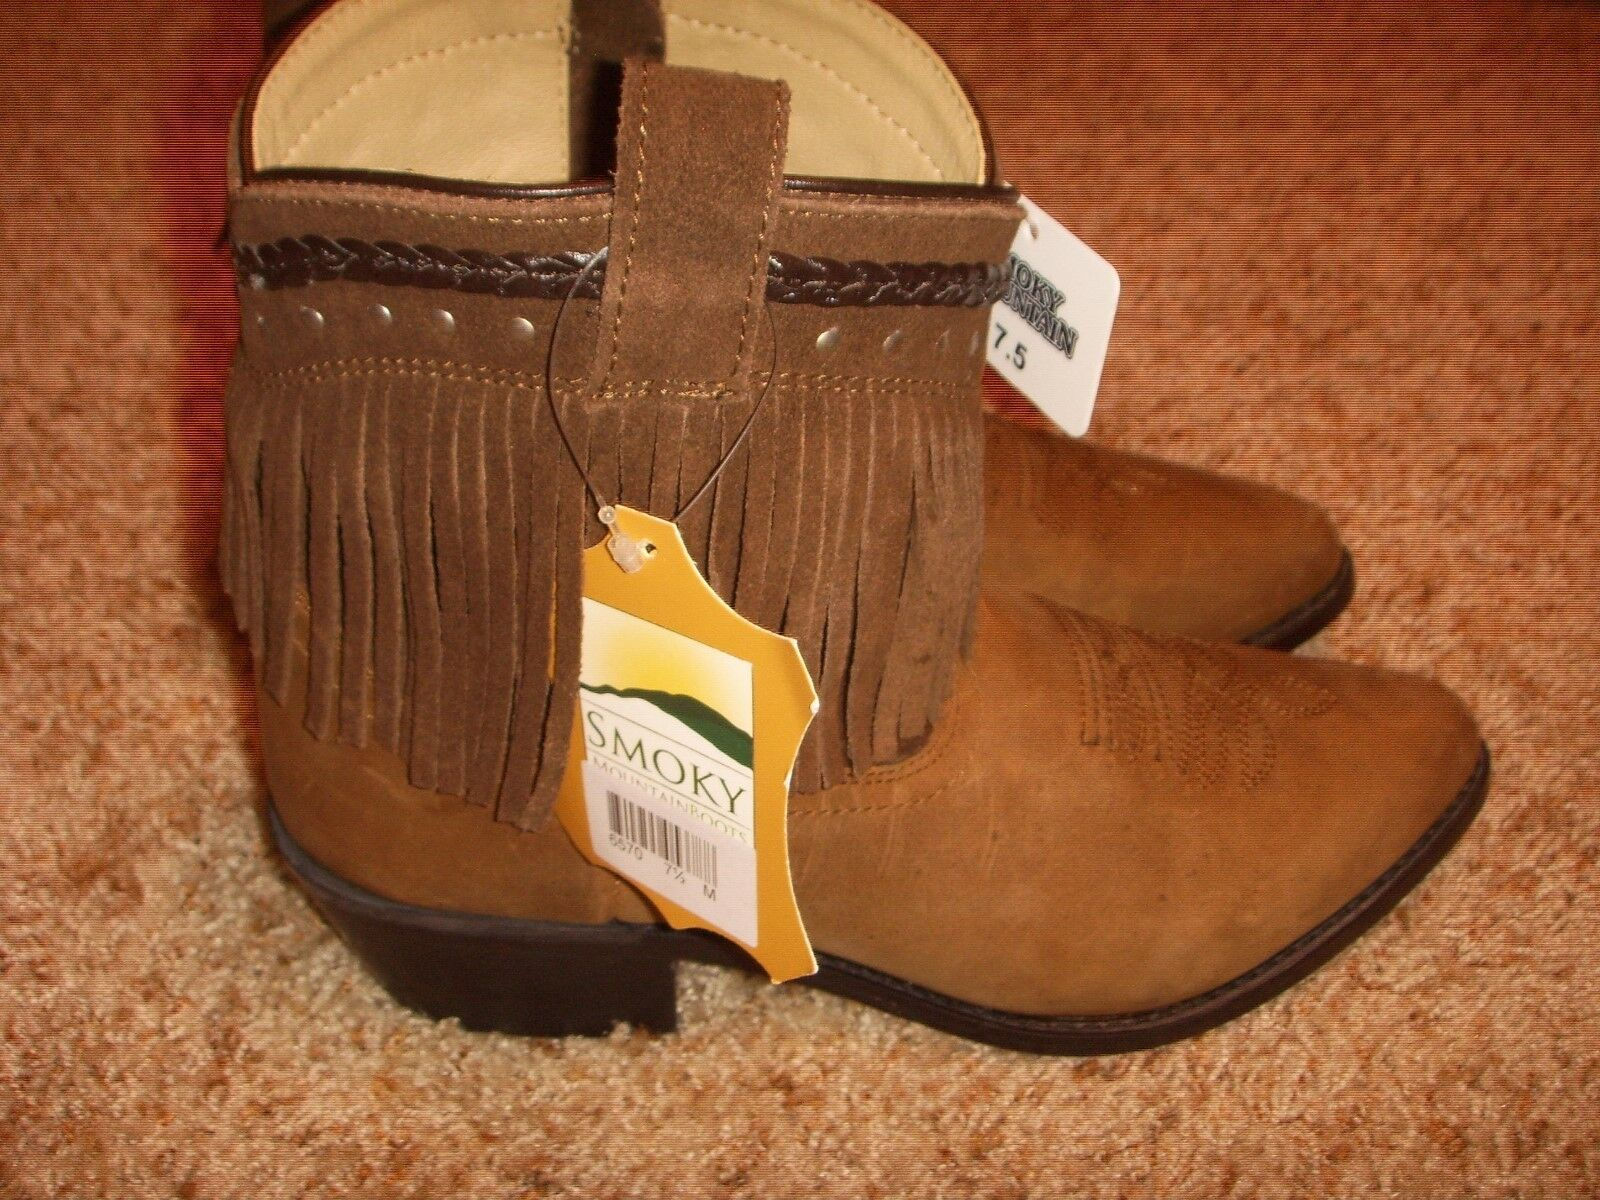 Smoky Mountain Torrance Western Cowboy bottes cuir Zip Up Fbaguee marron Wms 7.5